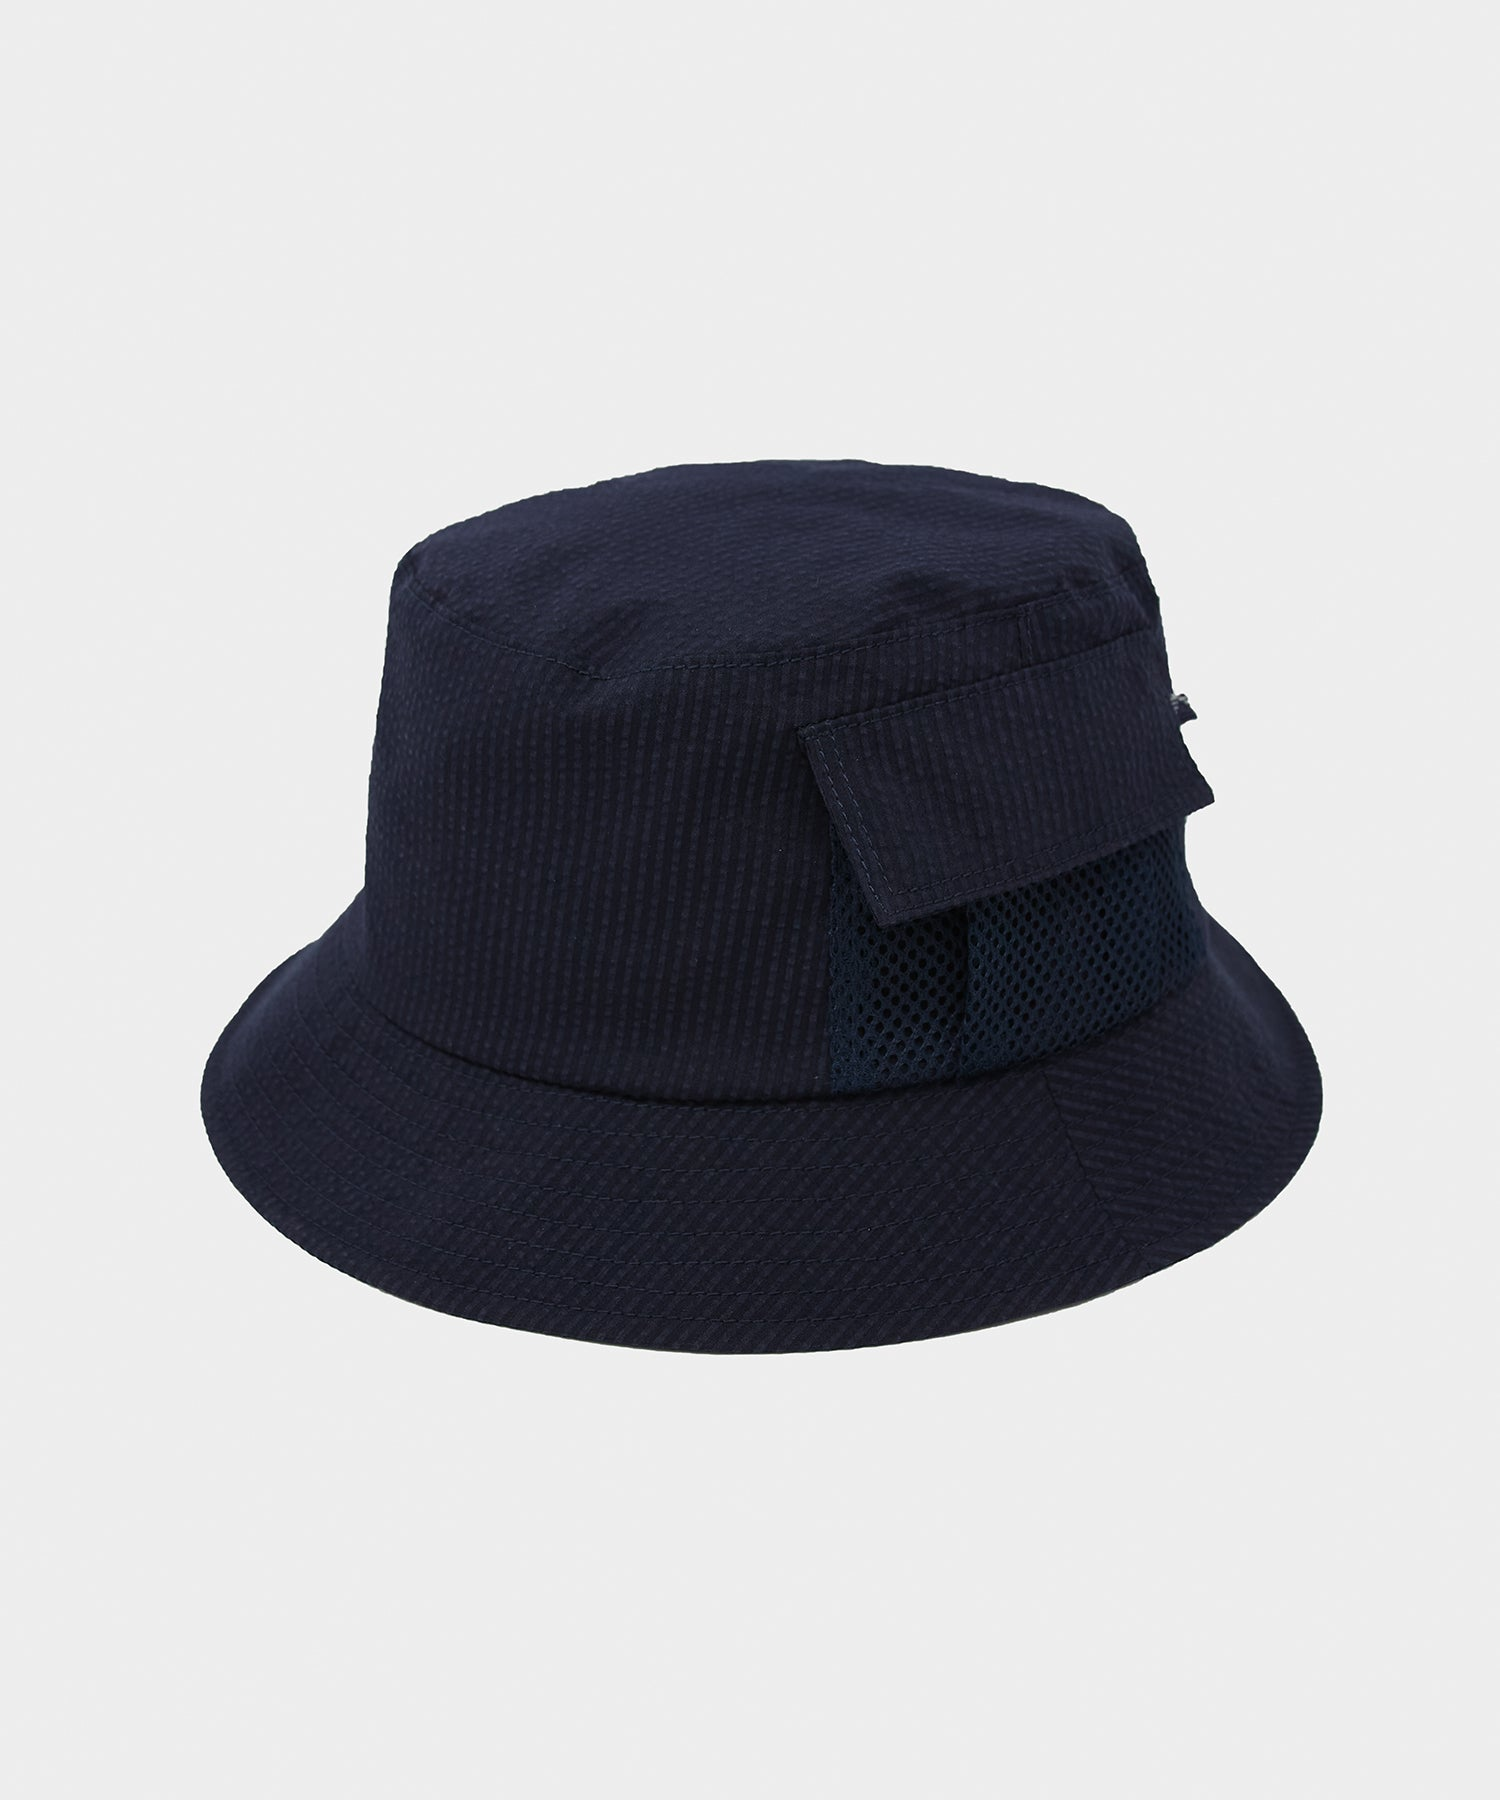 Câbleami Cool Max Seersucker Bucket Hat in Navy